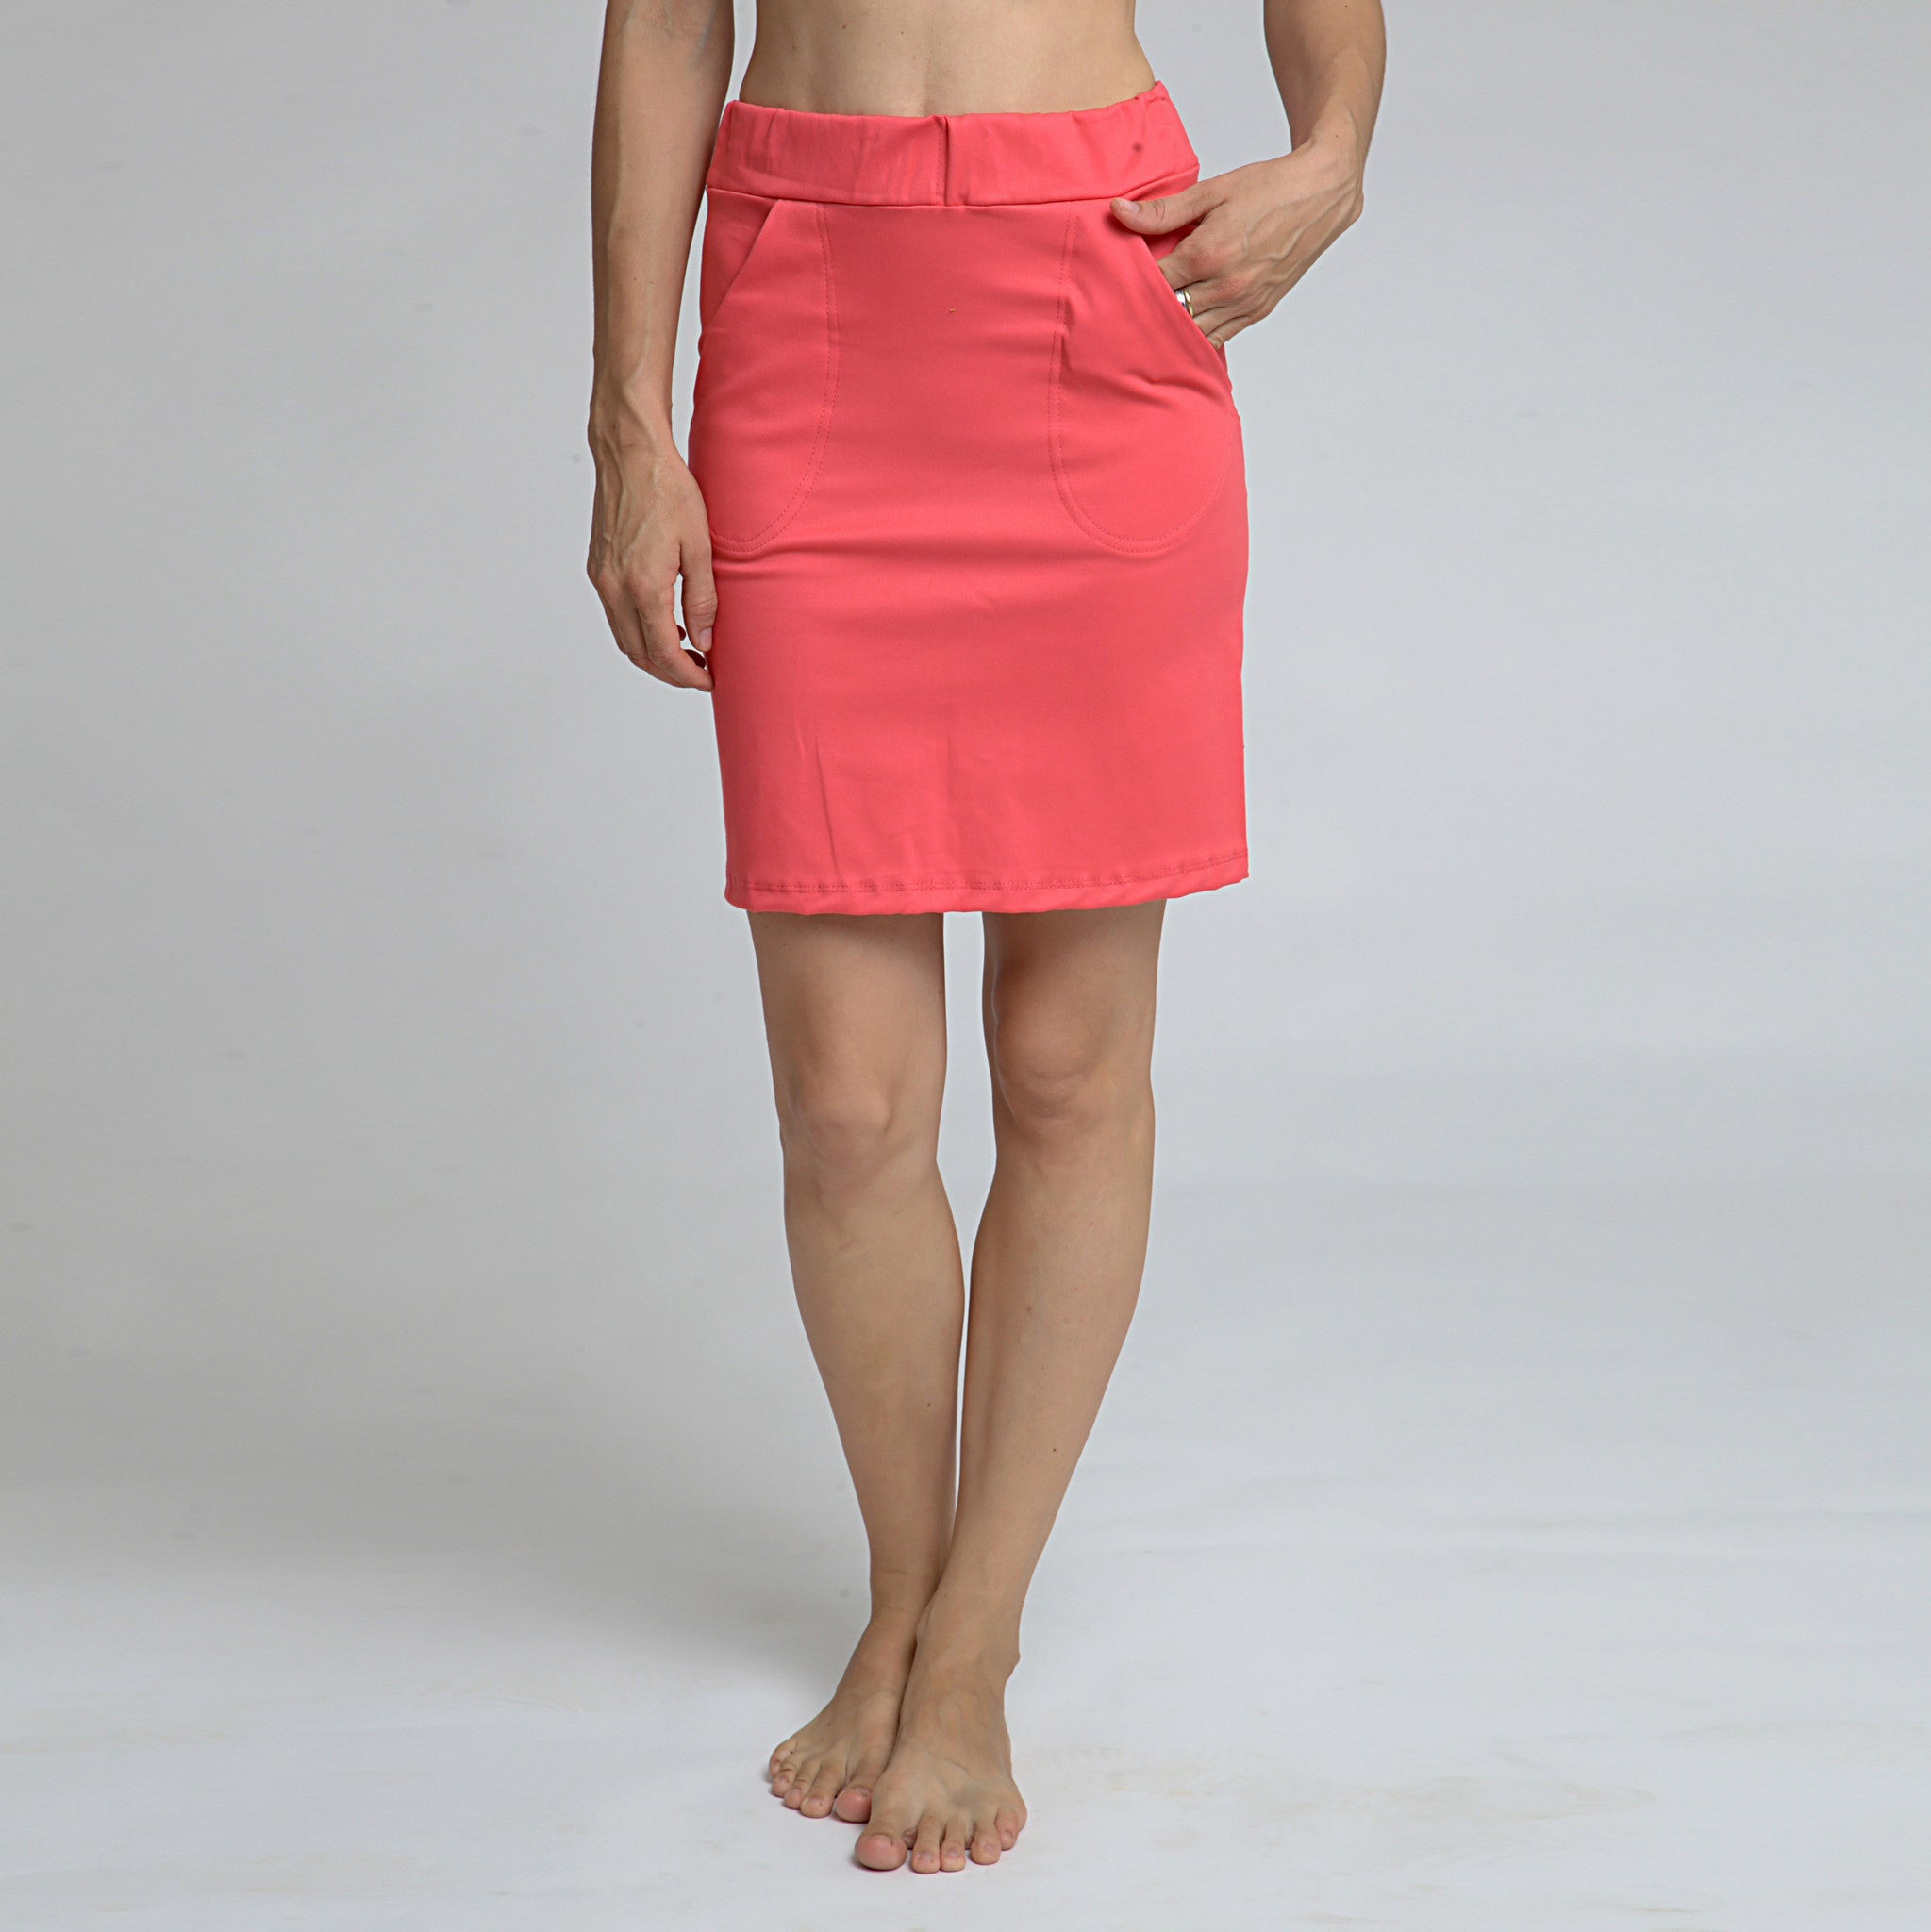 Cotton Skirt - DuendeFashion  - 5